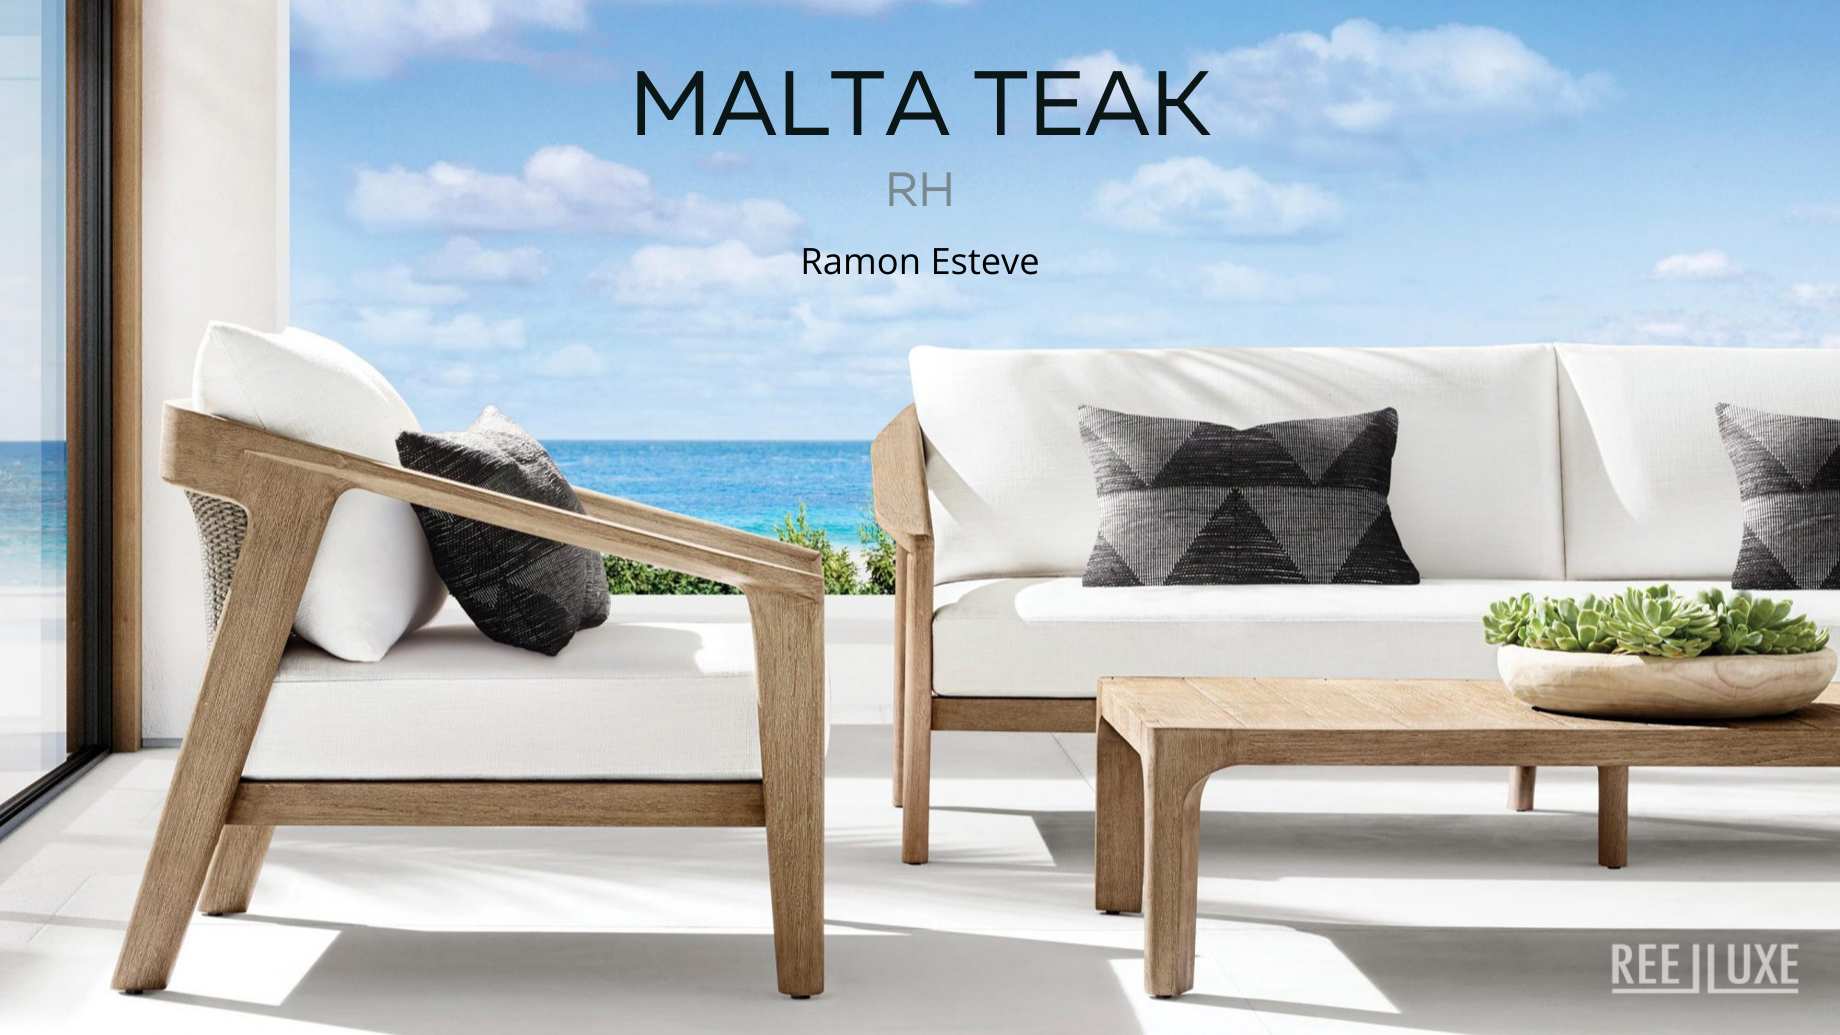 Malta Teak Collection Outdoor Furniture Design for RH - Ramon Esteve